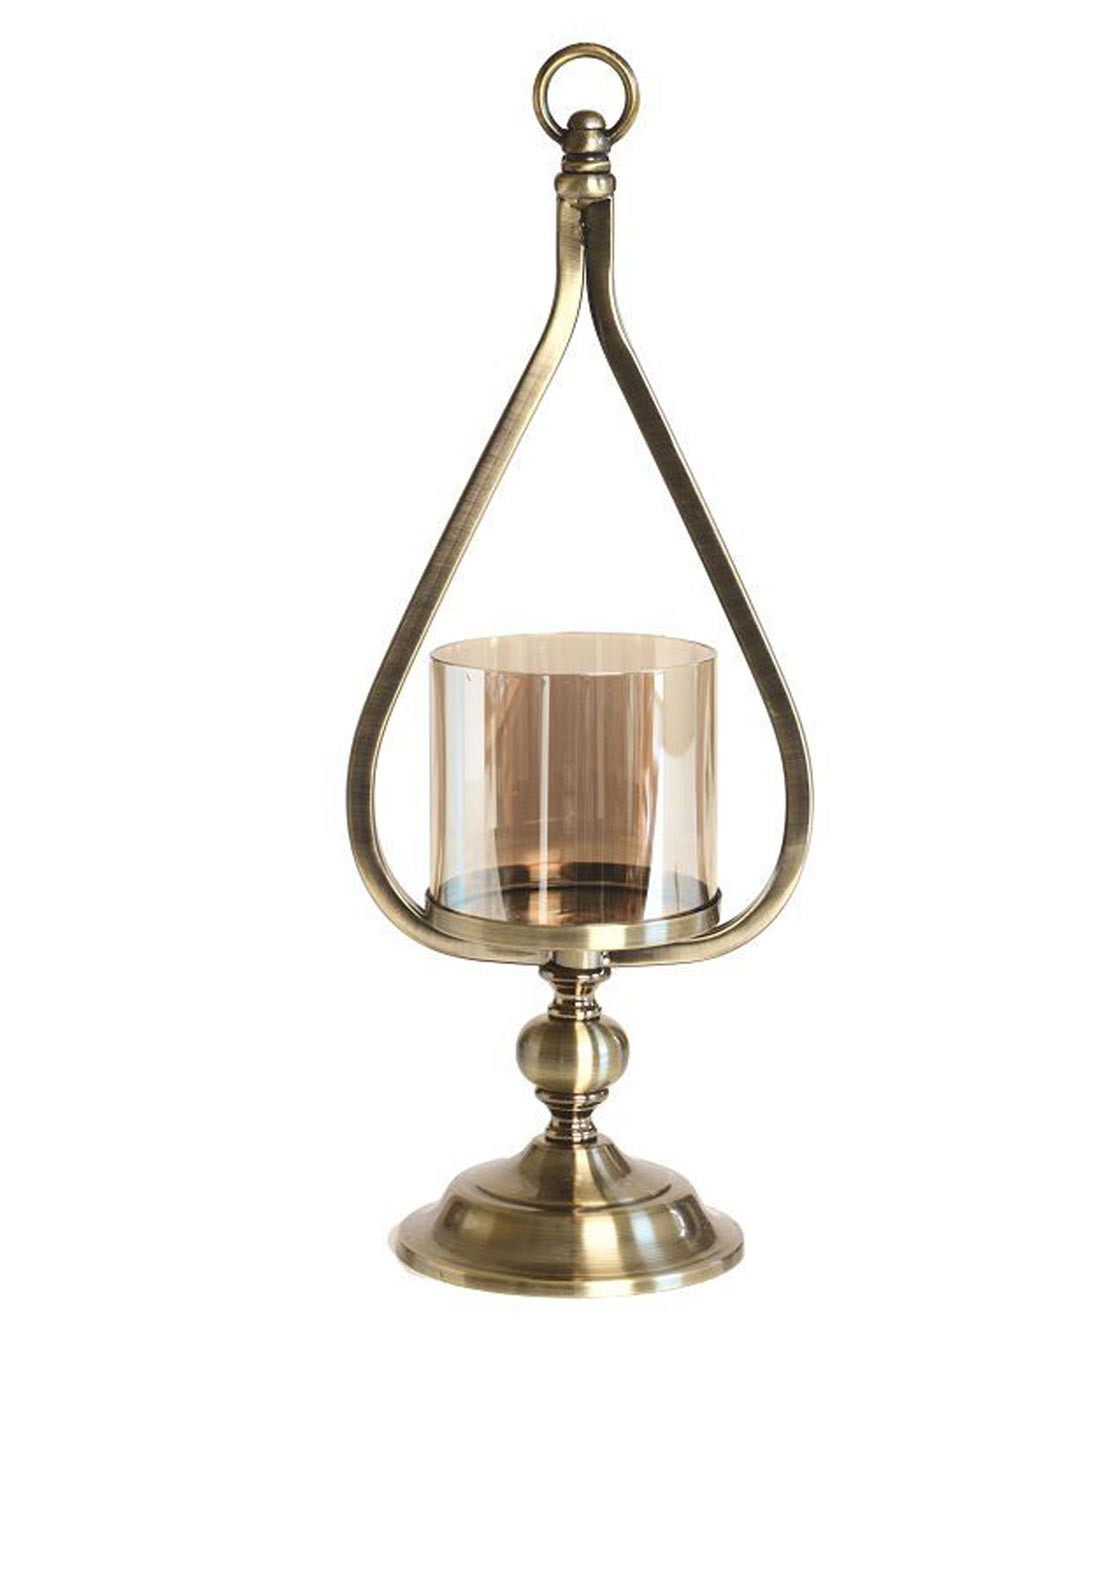 Mindy Brownes Deco Lantern Teardrop Design, 17 inches